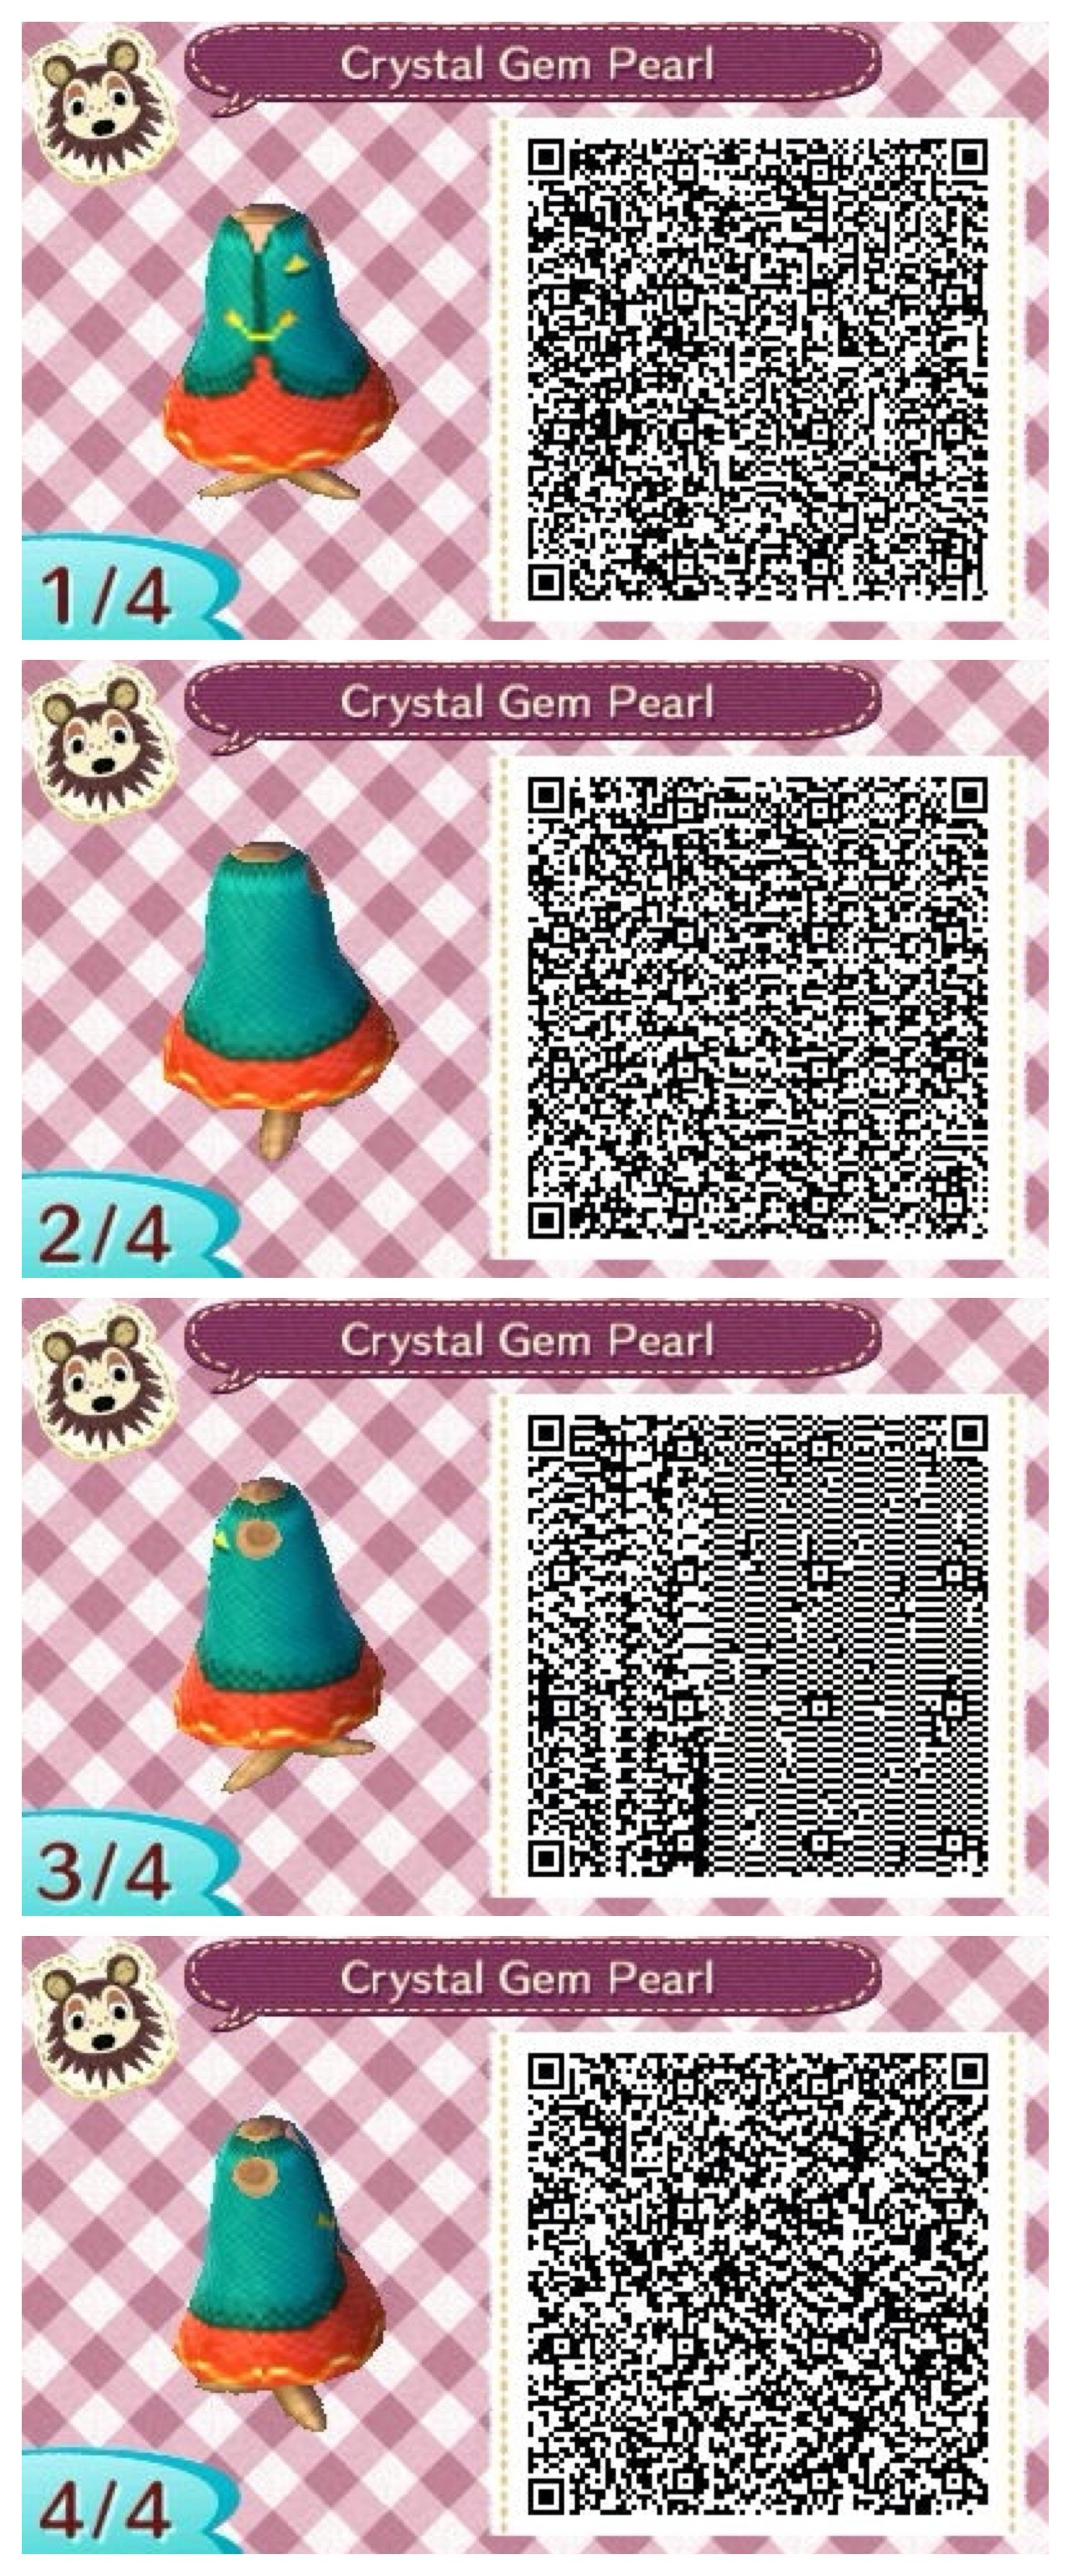 Fresh New Leaf Hair Style Images Of Hairstyle Ideas 9554 With Images Animal Crossing Hair Animal Crossing Hair Guide Animal Crossing Wild World